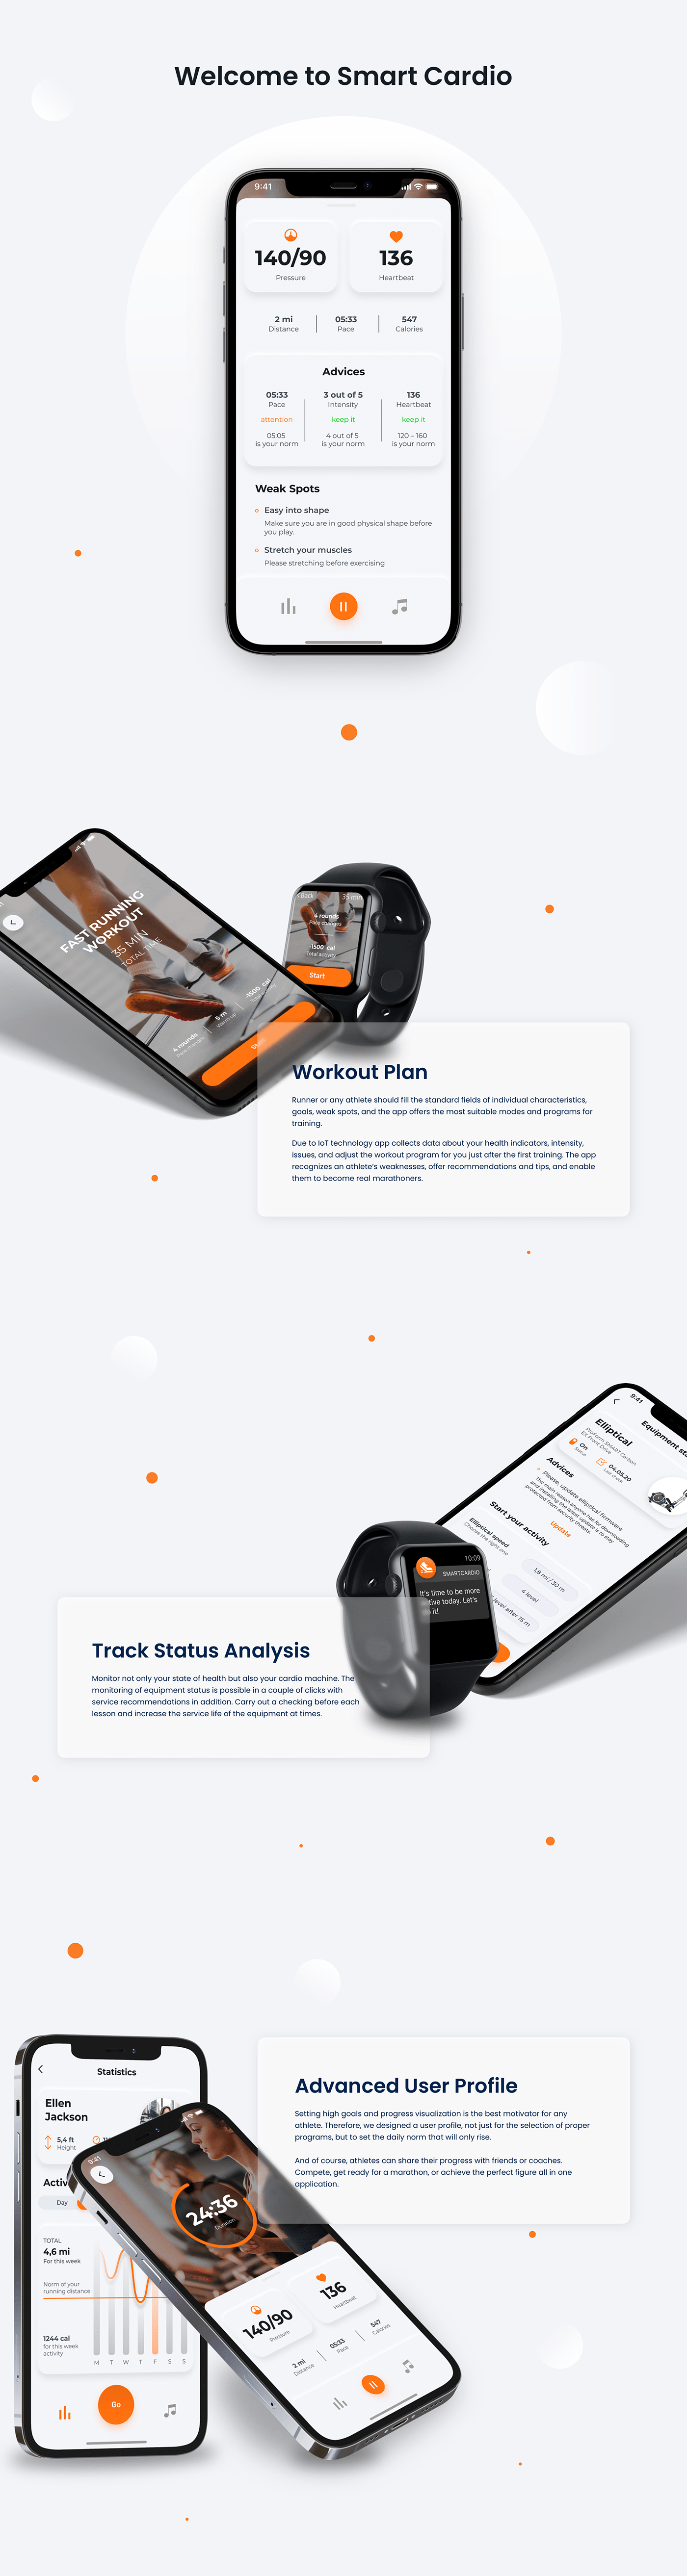 android fitness ios IoT Mobile app apple watch mobile design Prototyping Web Design